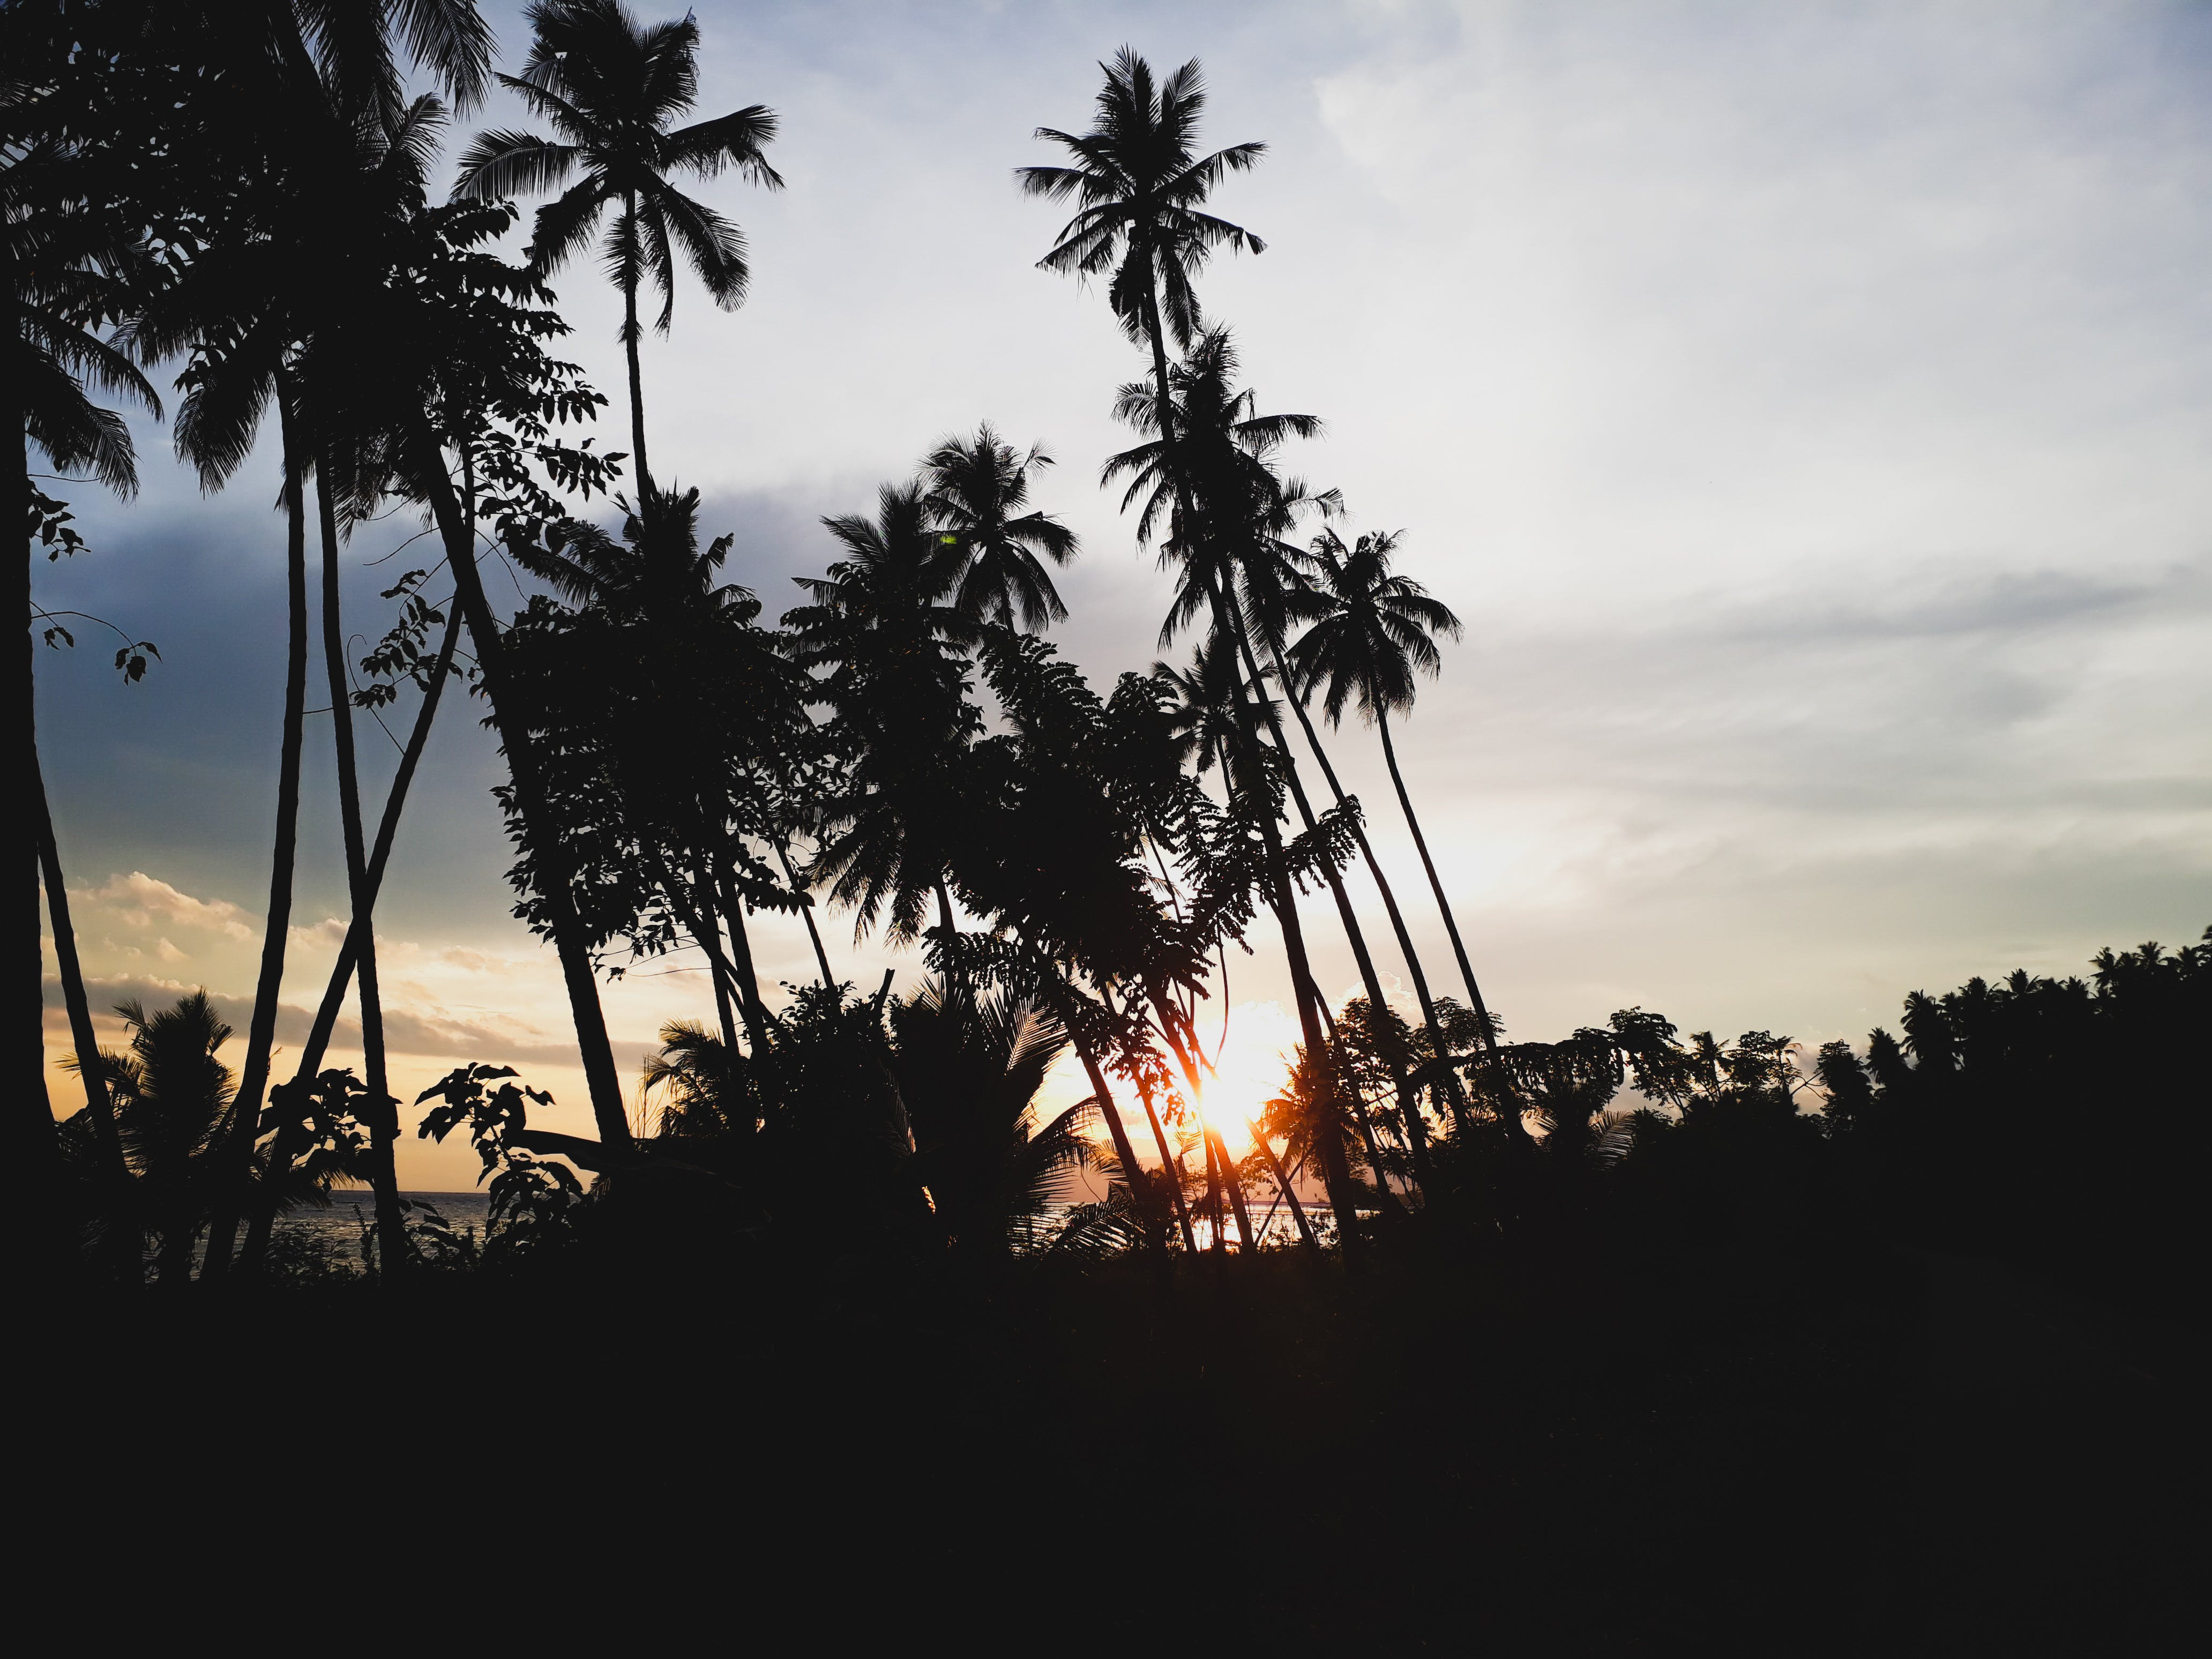 Silhouettes of Palm Trees During Sunset